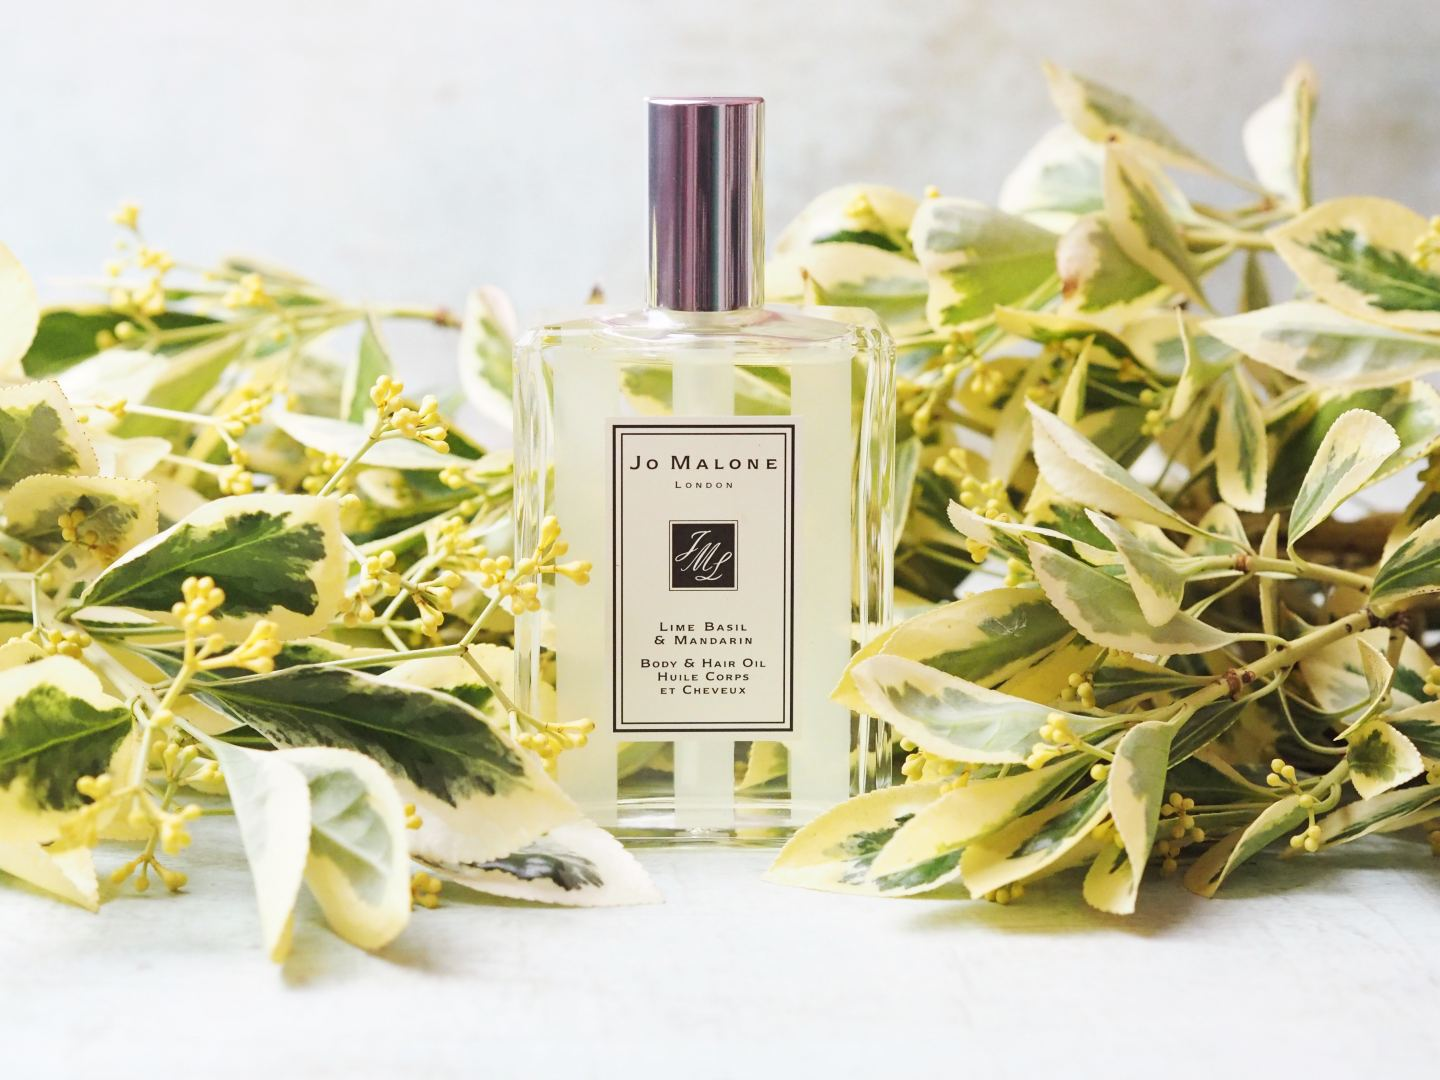 Jo Malone London Lime Basil & Mandarin Body & Hair Oil review new 2018